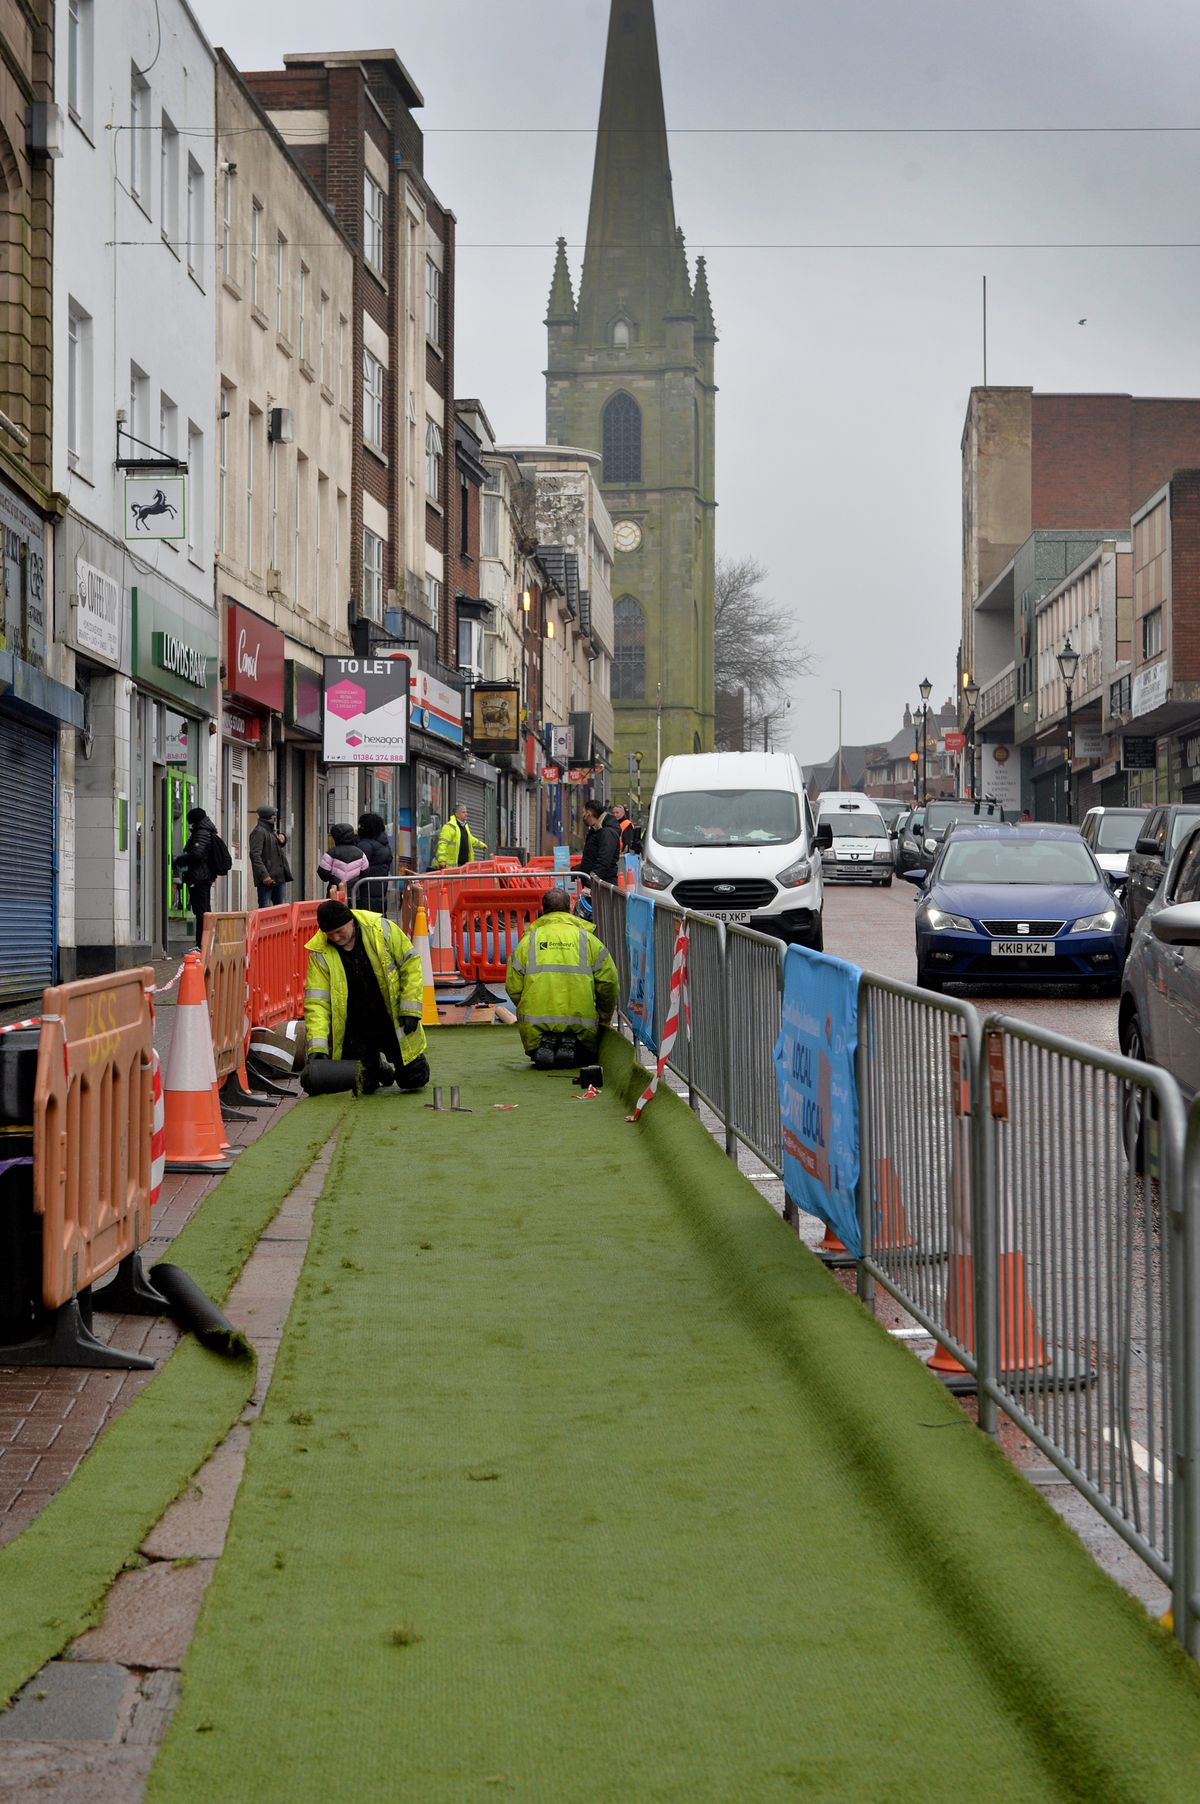 Artificial grass is placed in parking lots on Dudley High Street to aid social distancing